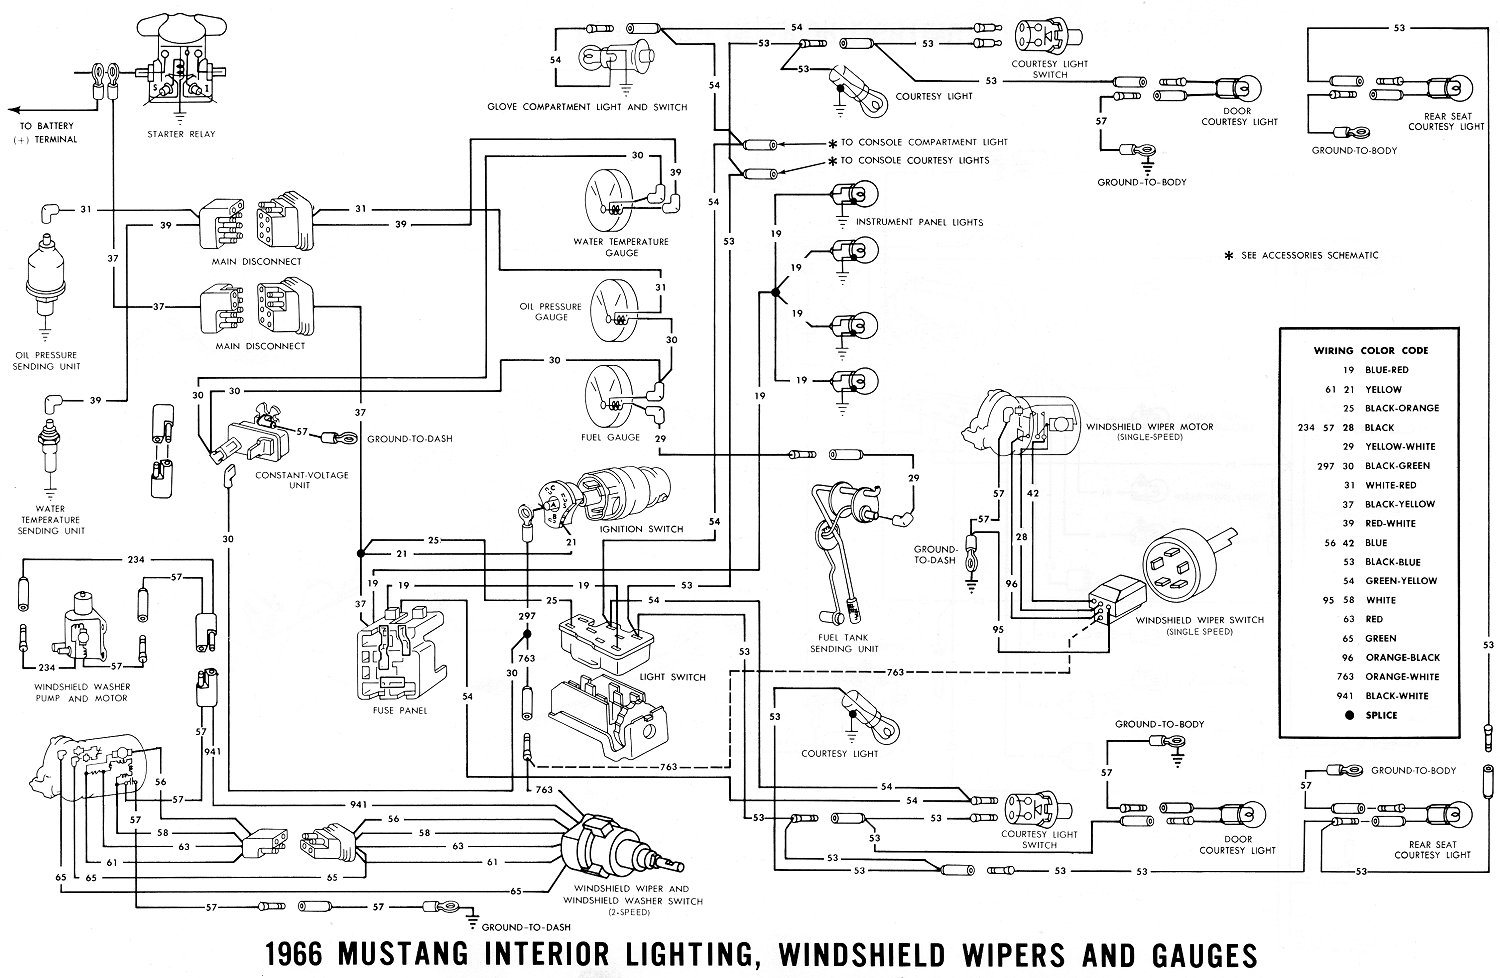 Cata Remontage Turn Signal moreover 936701 Voltage Regulator Problems likewise 65 Mustang Steering Column Diagram together with 480195 Wiper Motor Switch Help moreover 1967 Mustang Wiring And Vacuum Diagrams. on 68 ford galaxie wiring diagram